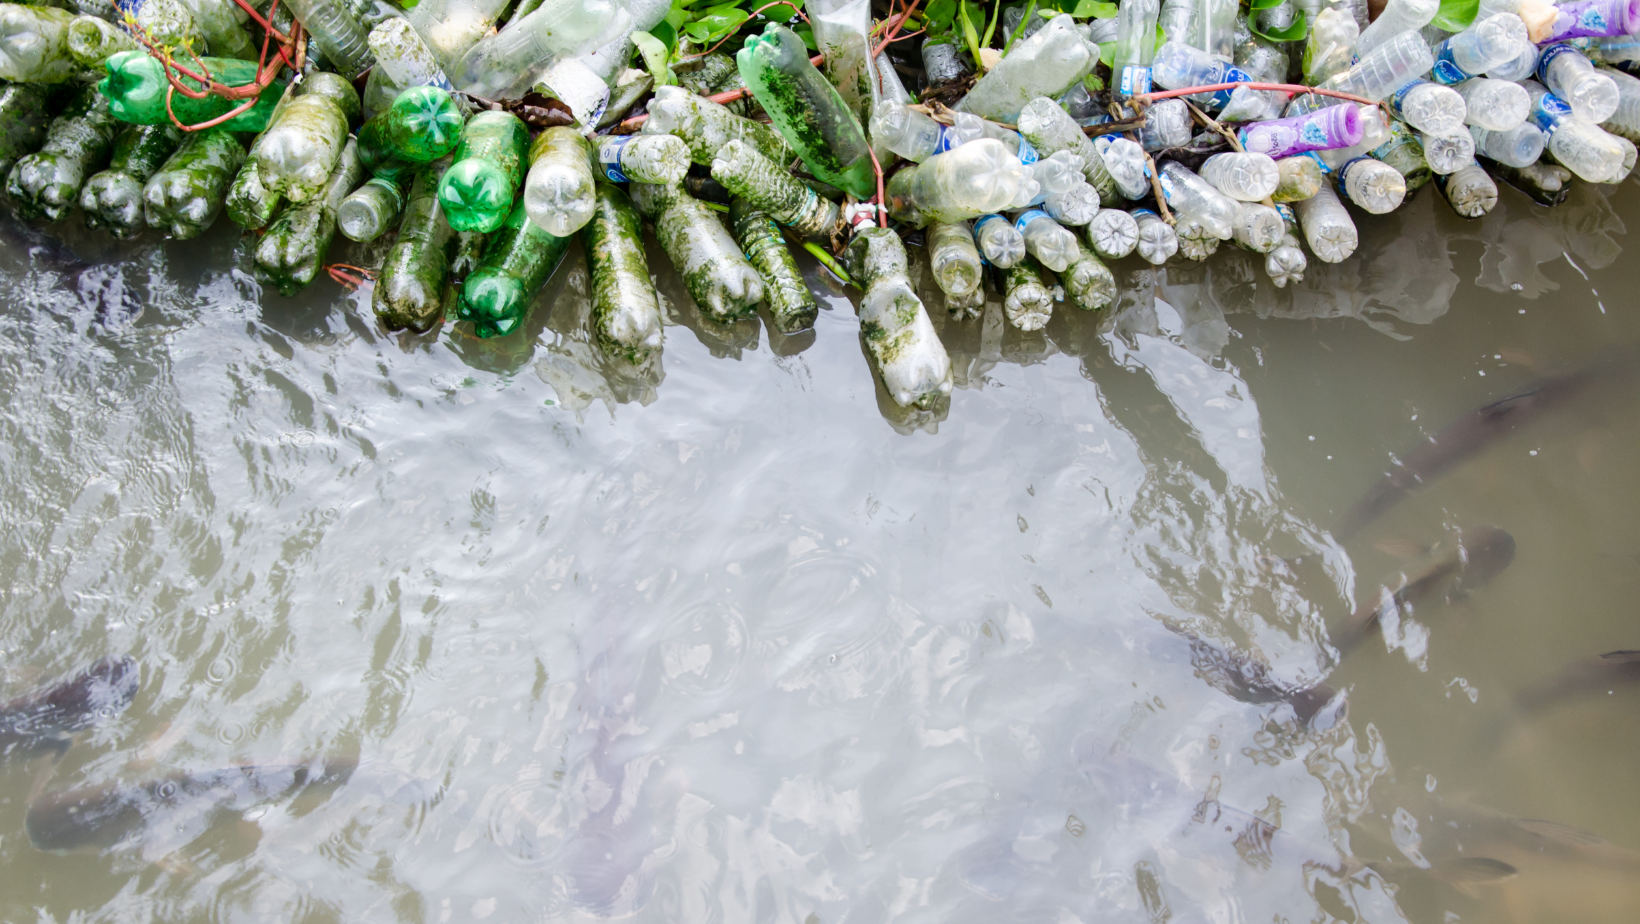 A bunch a plastic bottles in murky water with fish swimming around